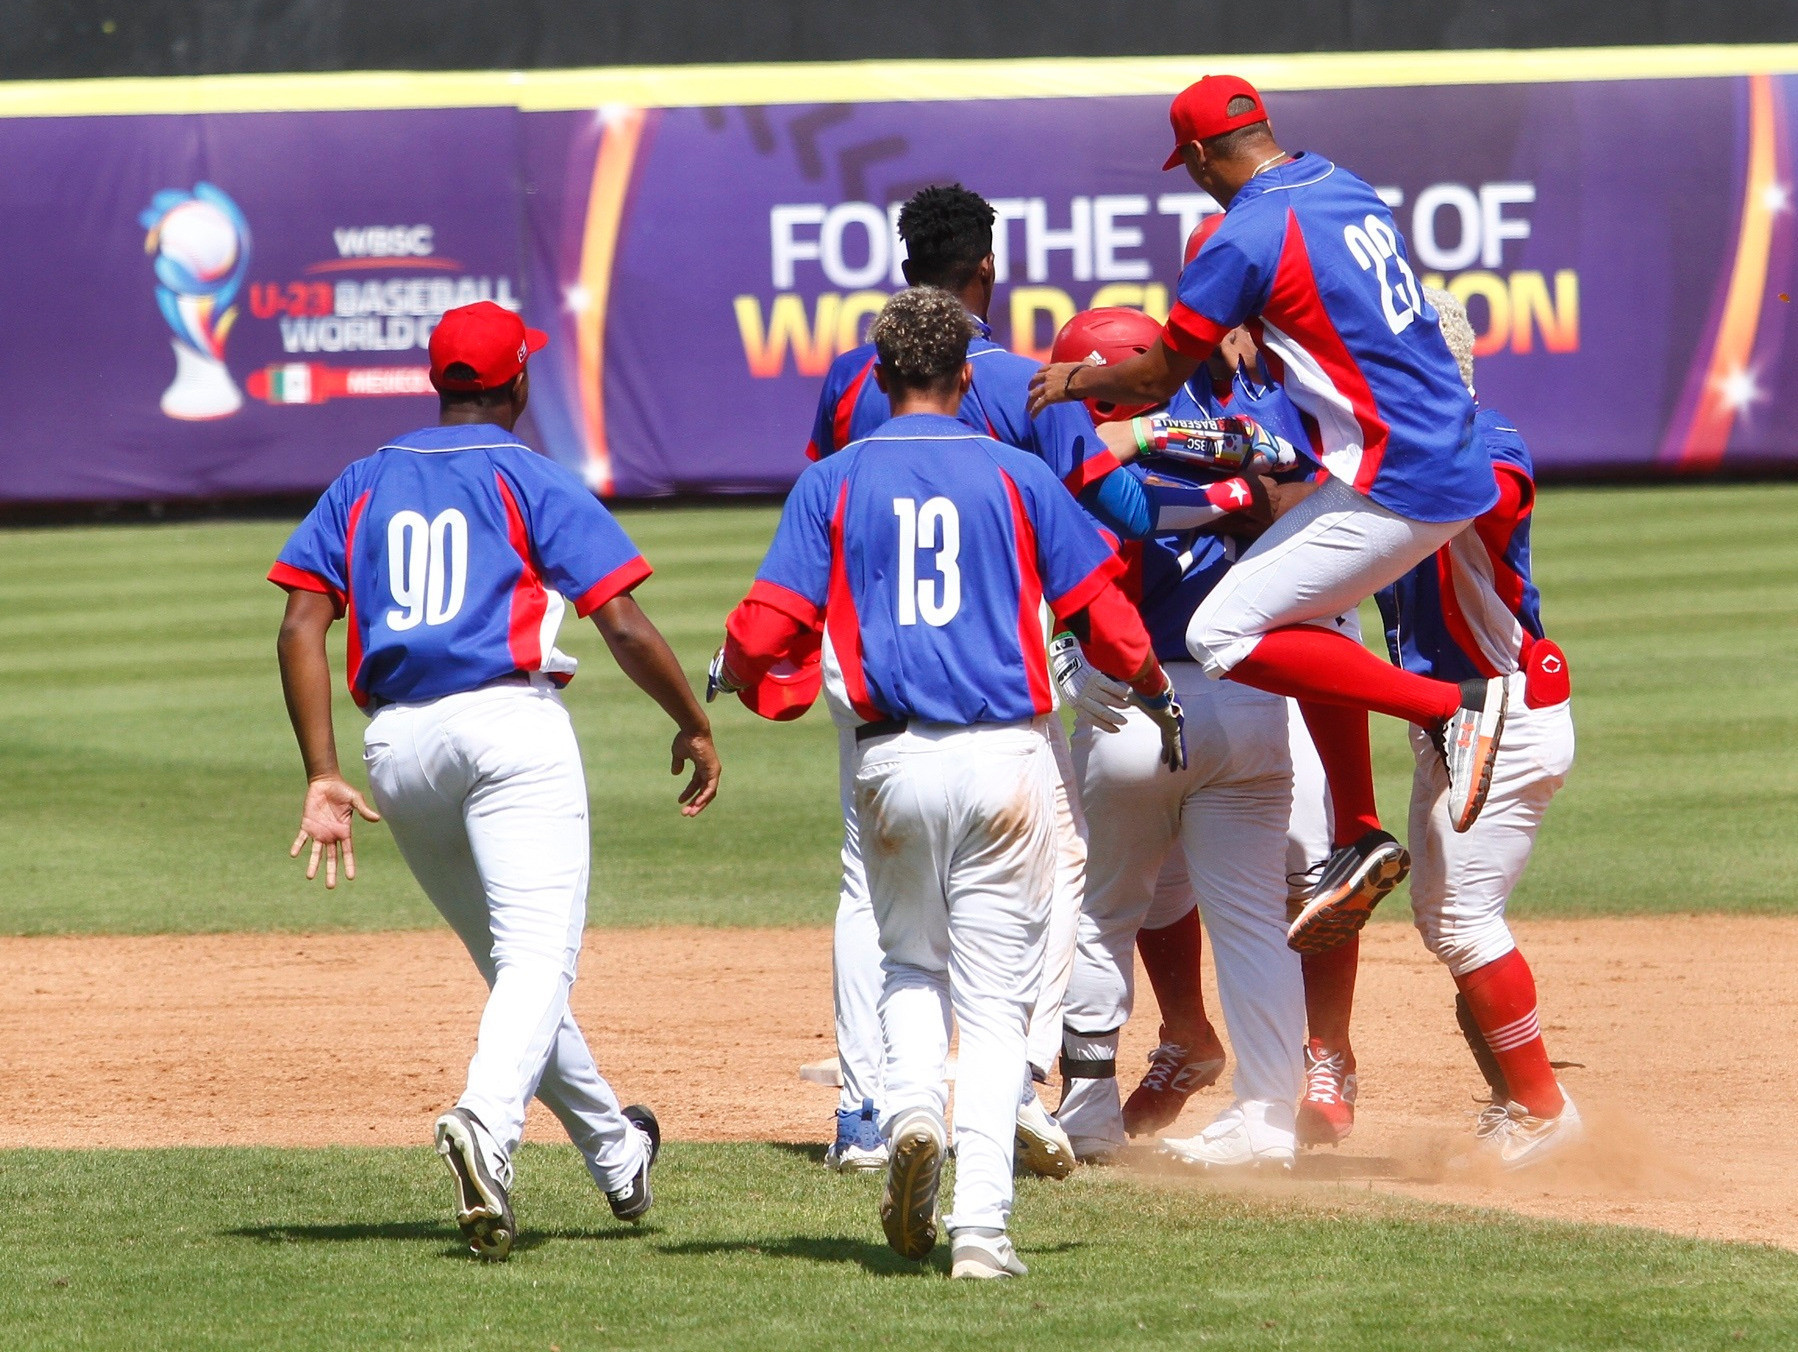 Cuban players defect during Under-23 Baseball World Cup